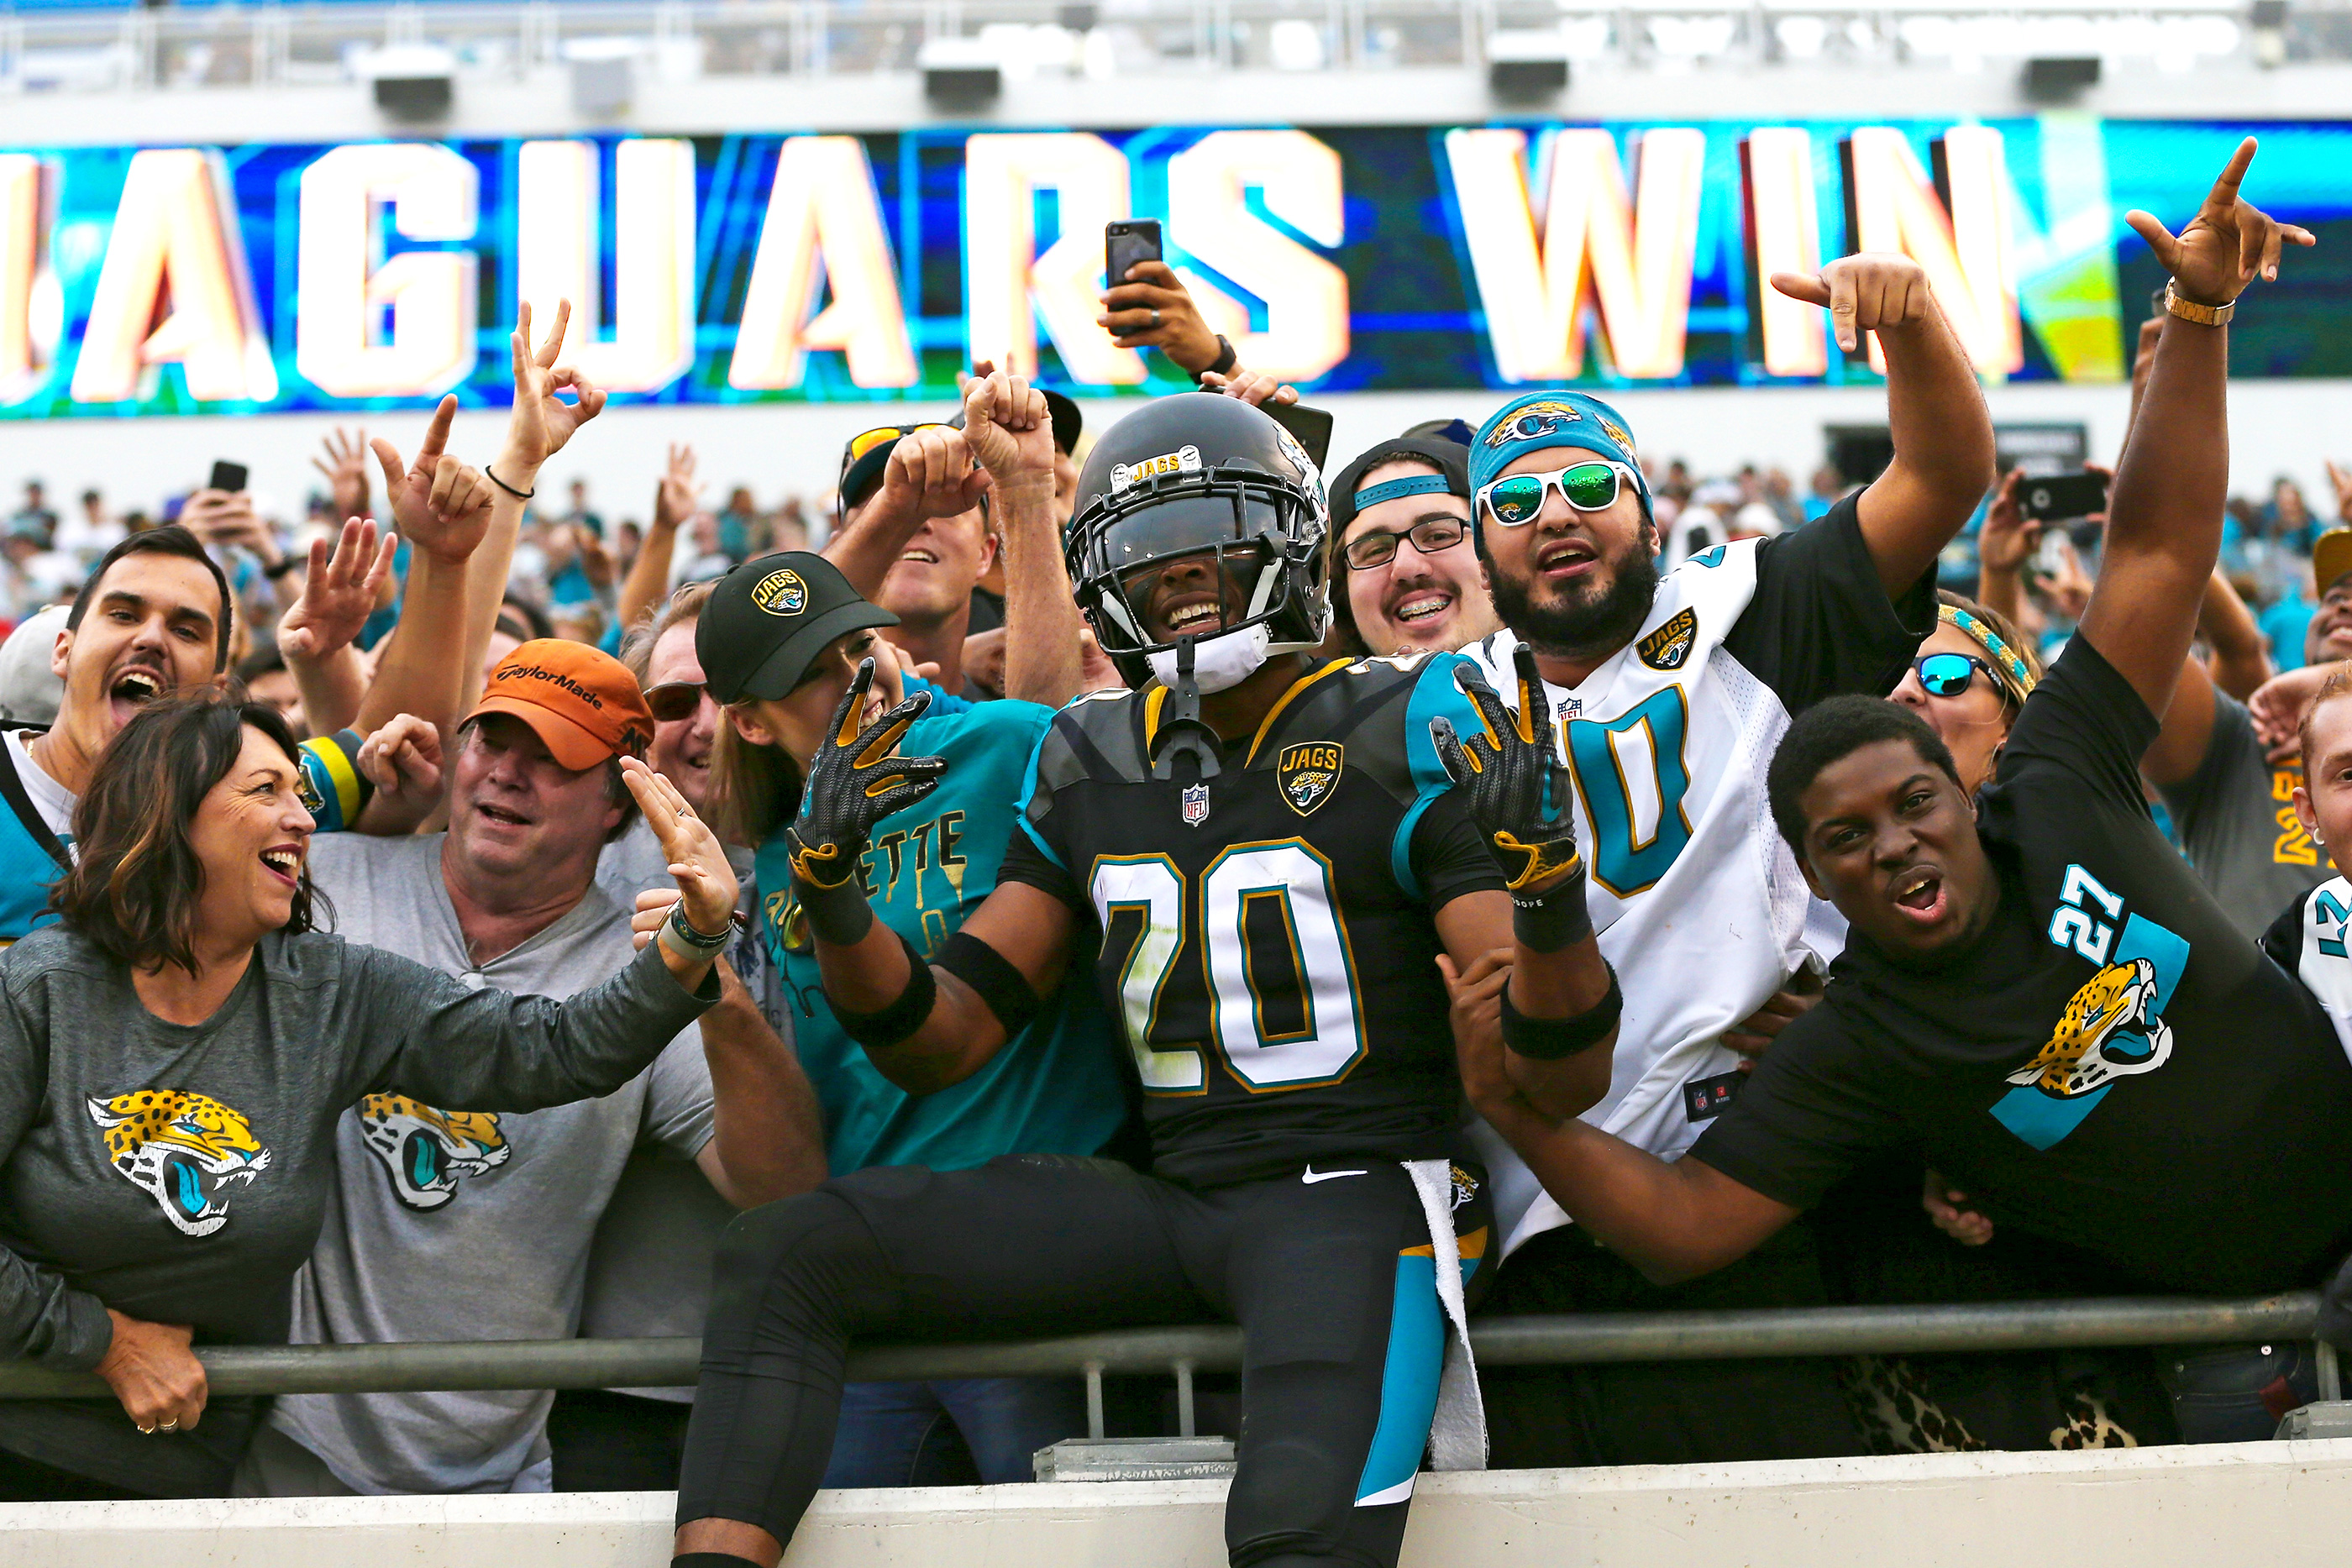 Jalen Ramsey of the Jacksonville Jaguars celebrates after a big win with fans.